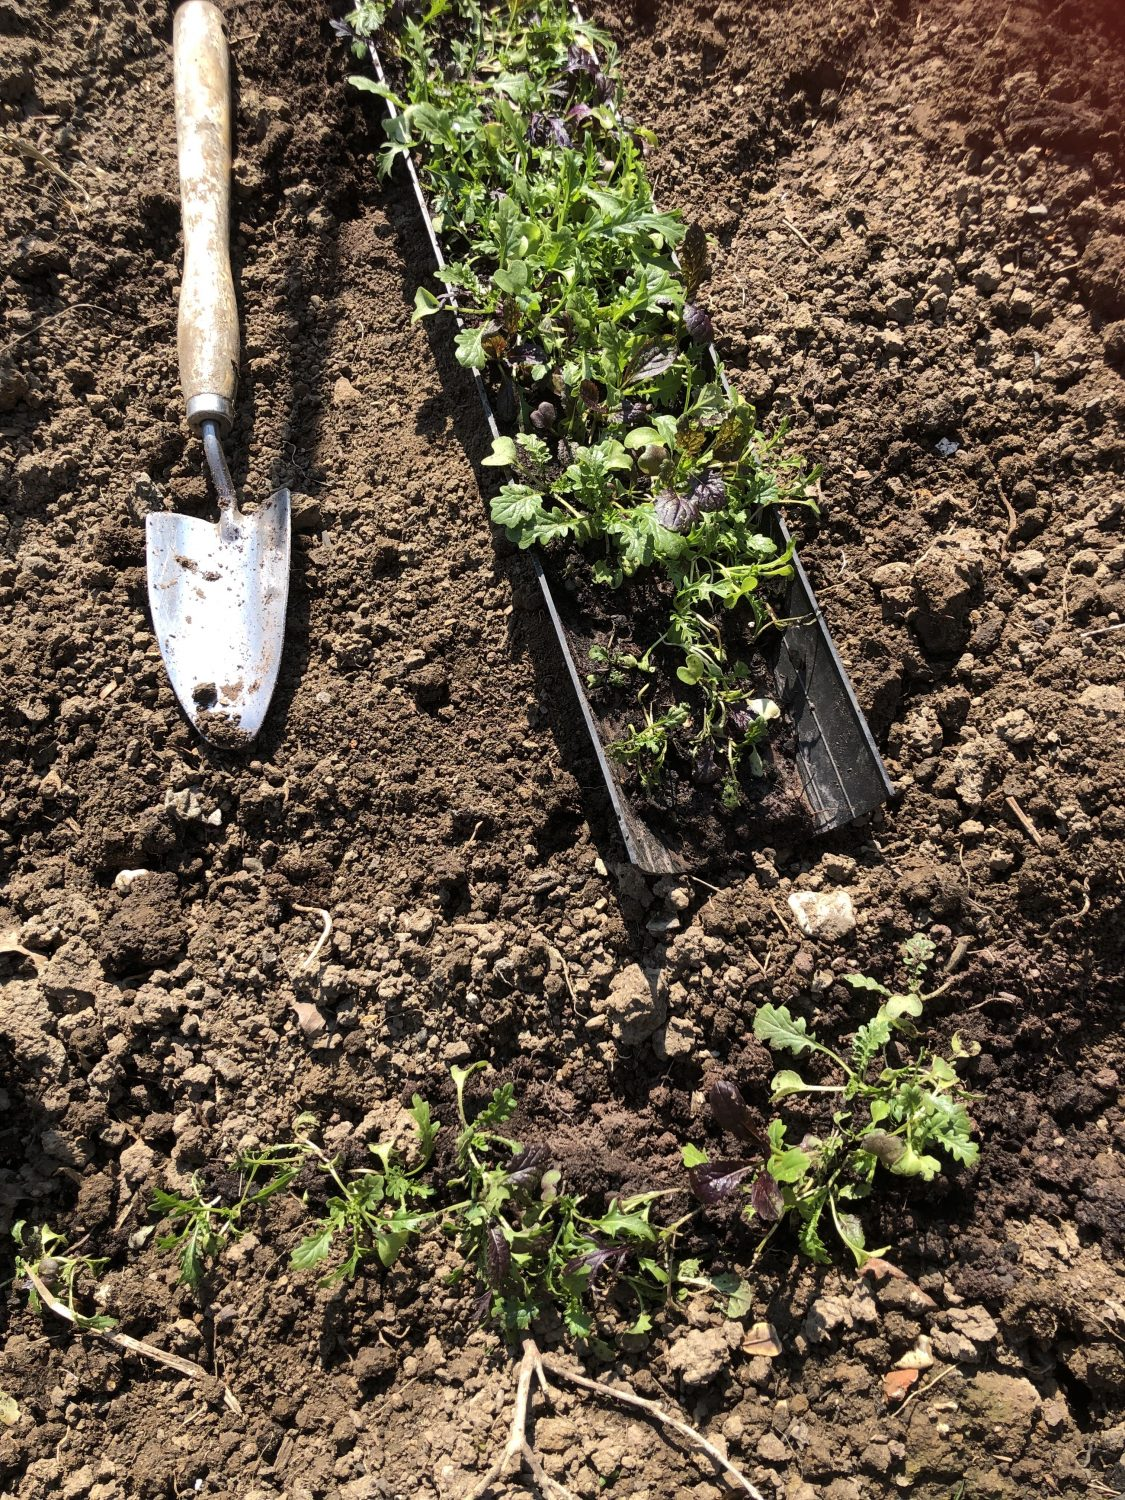 Planting out a row of salad